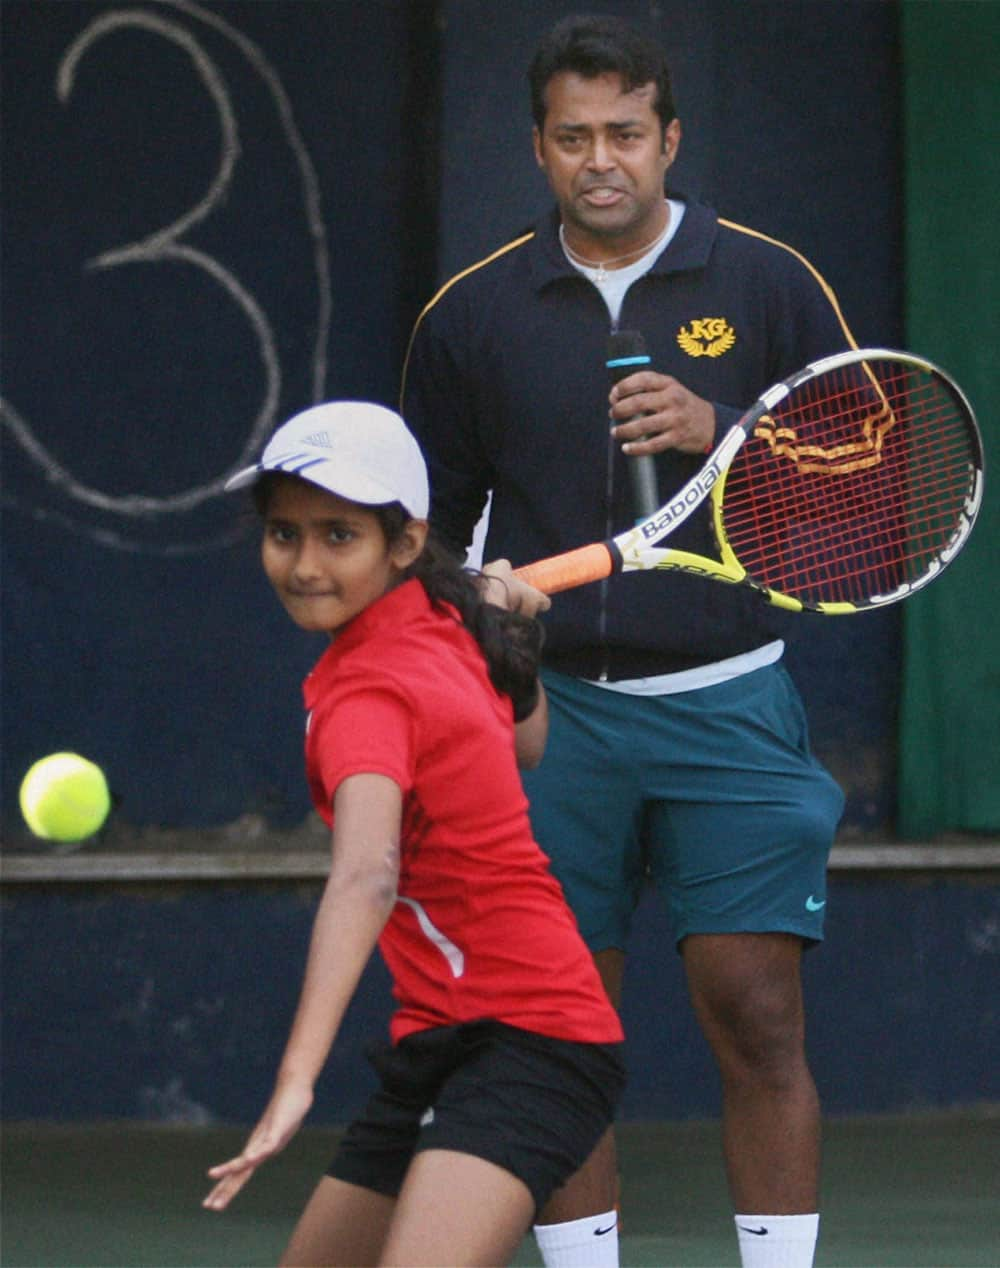 Tennis player Leander Paes during a training session for children in Mumbai.